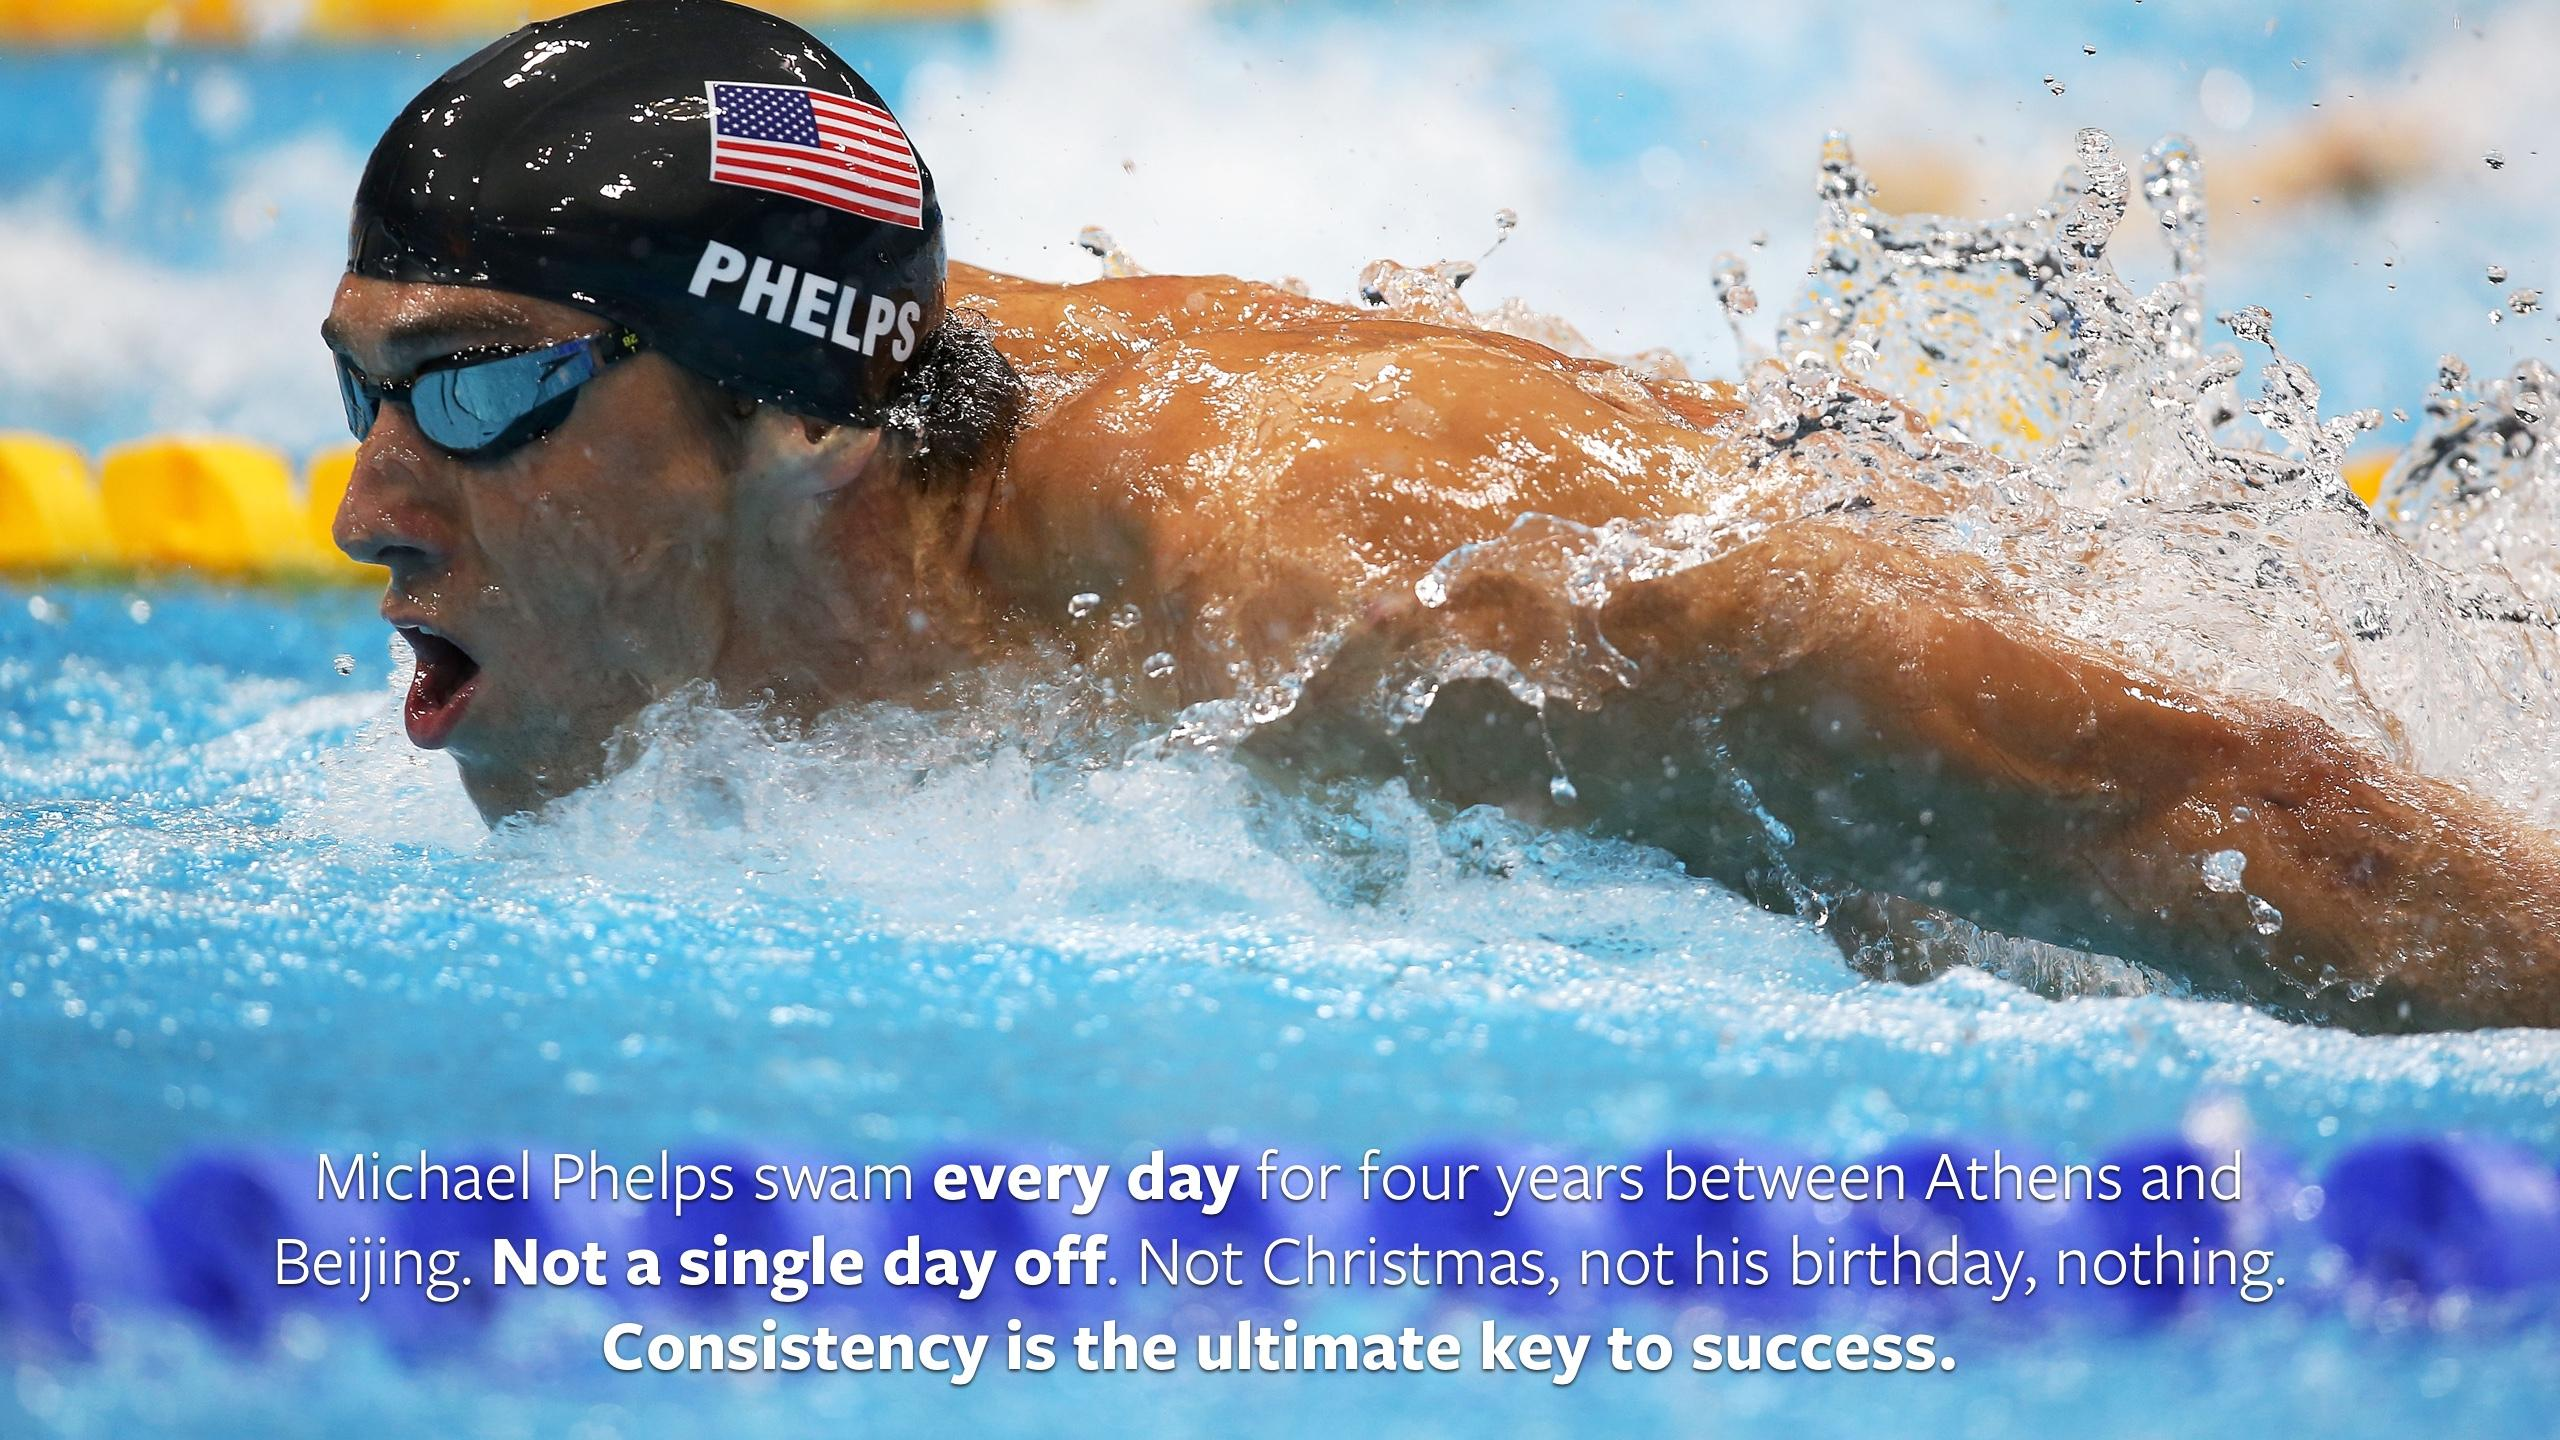 Michael Phelps Quote Wallpaper Loved That Quote About Michael Phelps Swimming Every Day